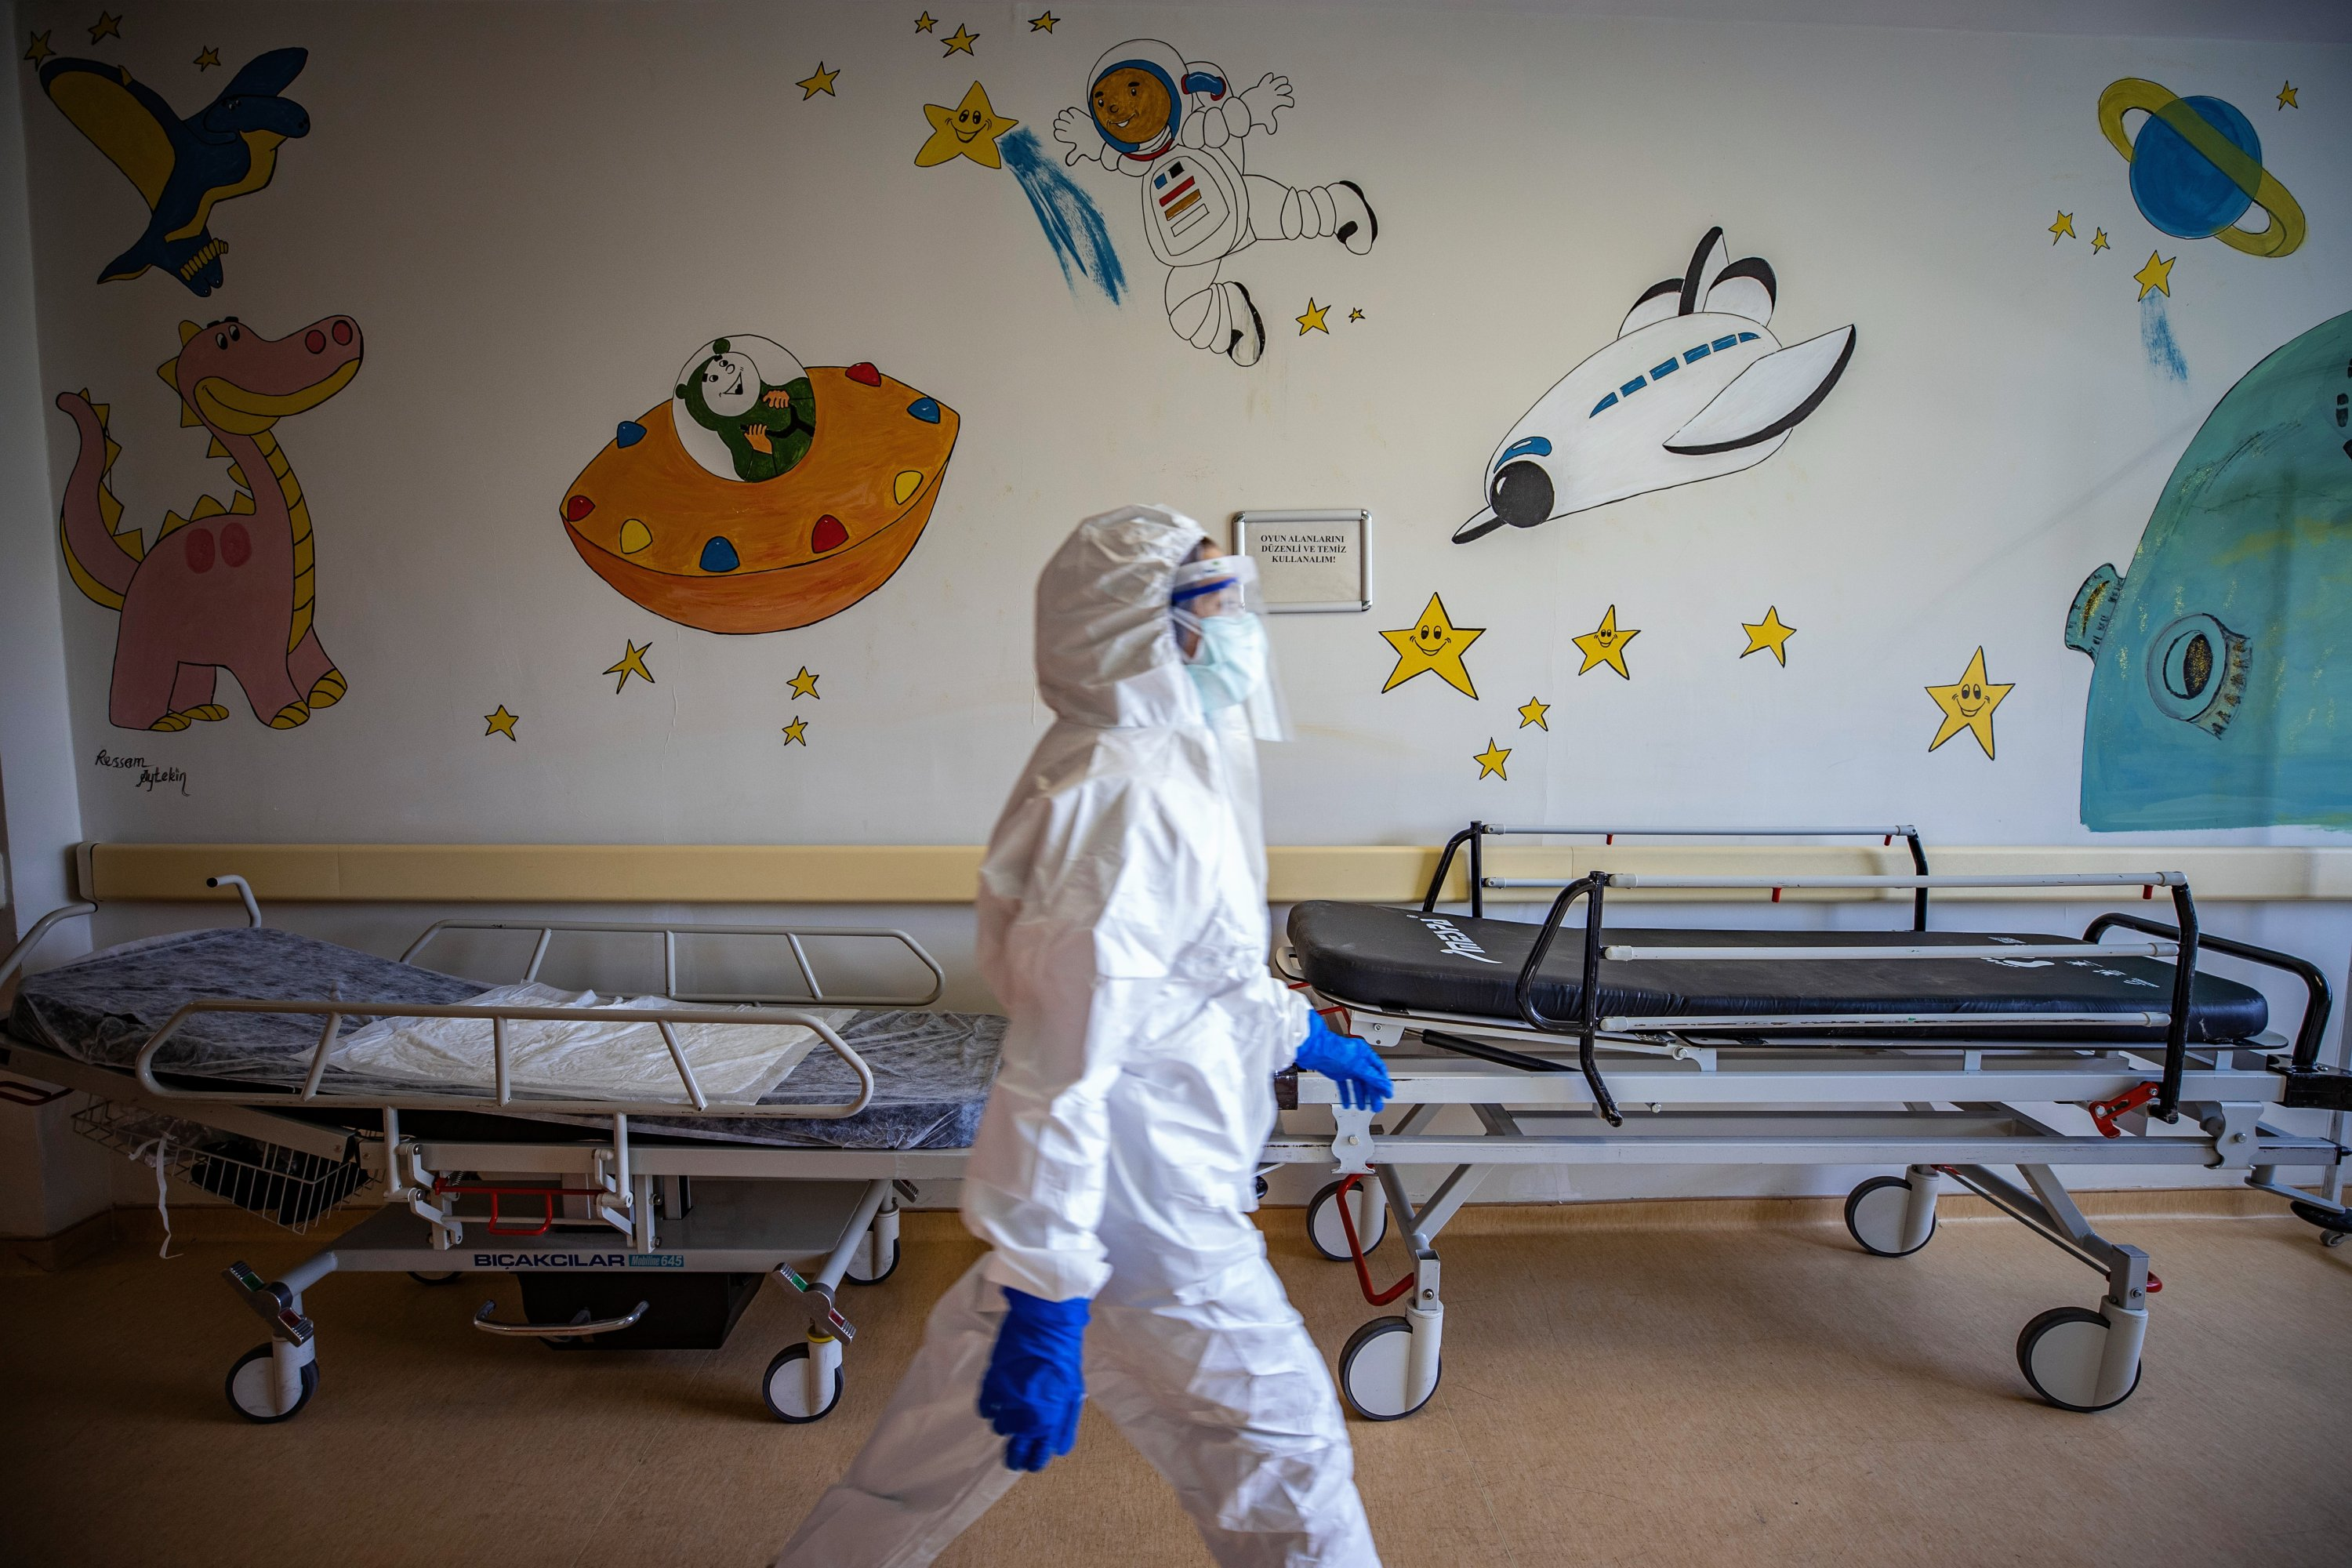 A hospital staff member walks past a wall adorned with drawings at the hospital, in Istanbul, Turkey, April 16, 2021. (AA PHOTO)